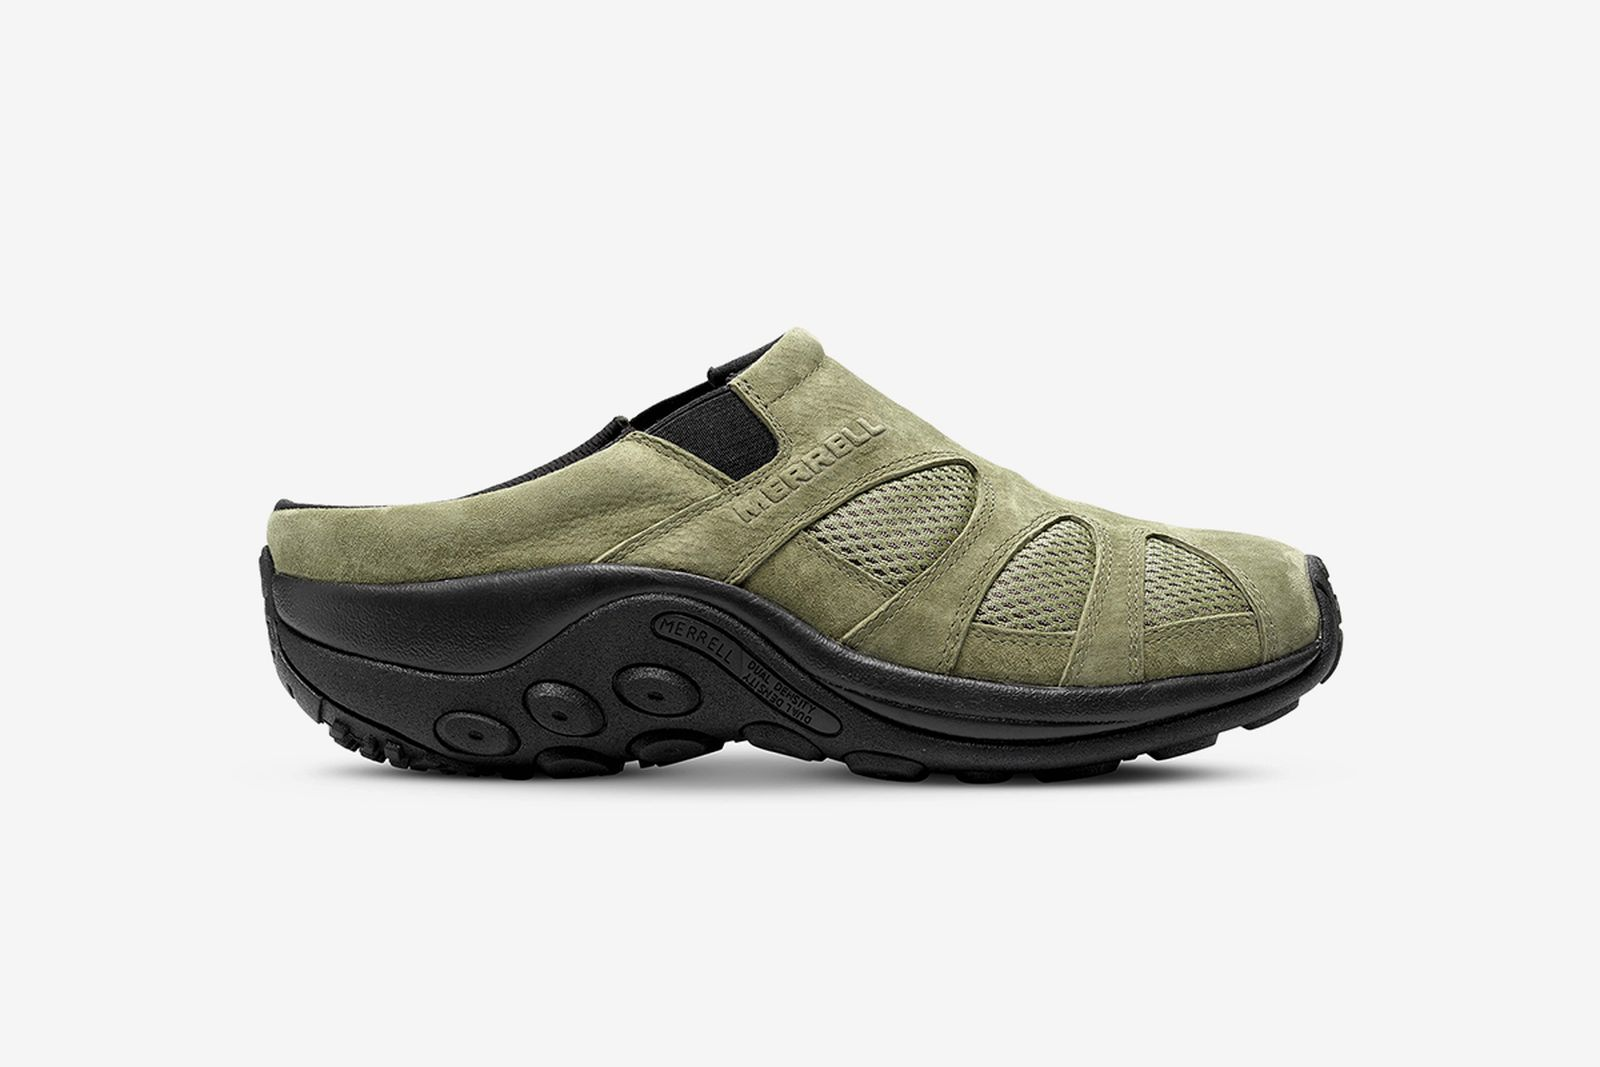 merrell-ss21-1trl-collection-05